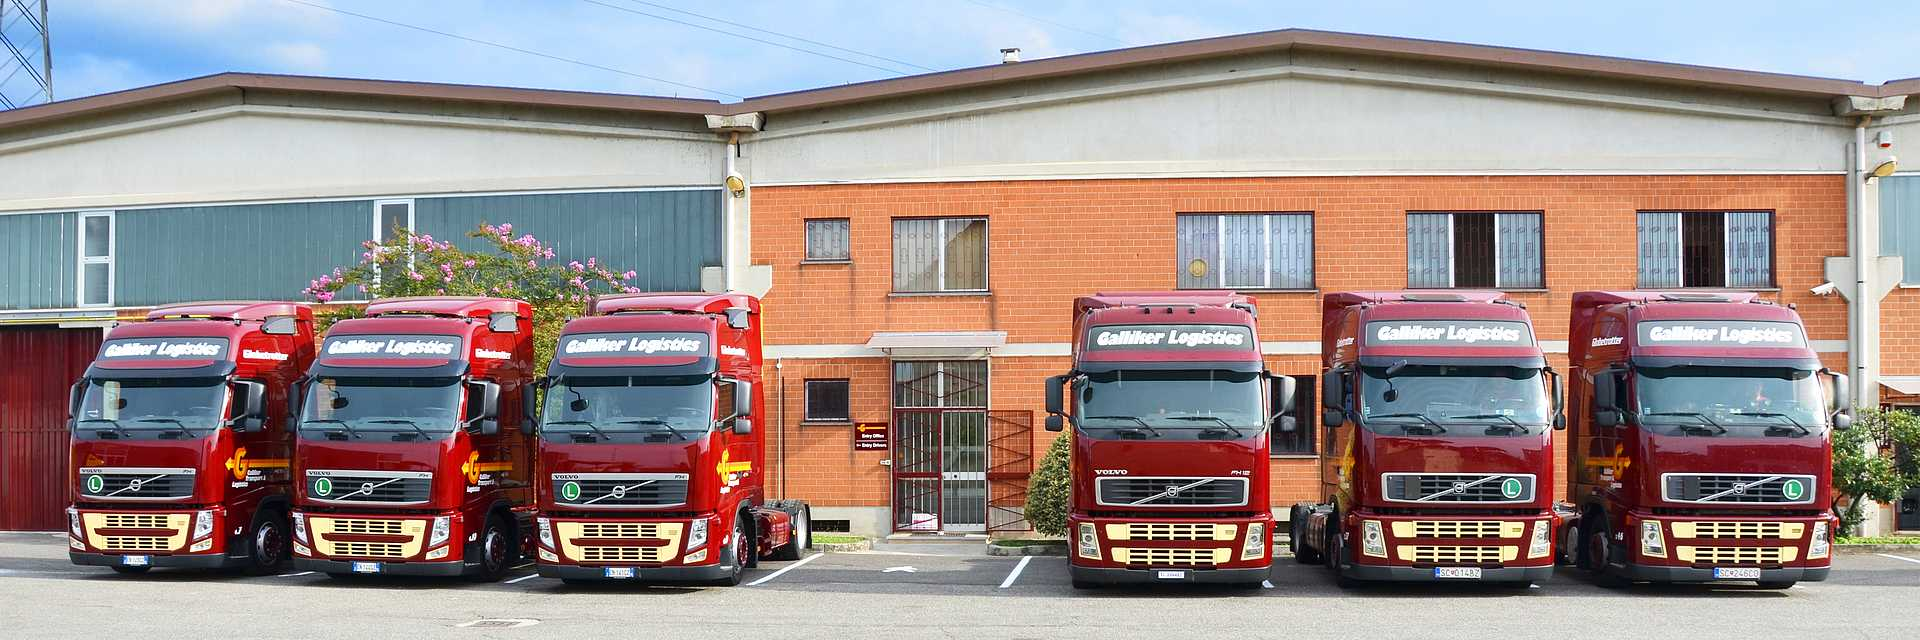 Galliker Transport Logistik TopPicture 057